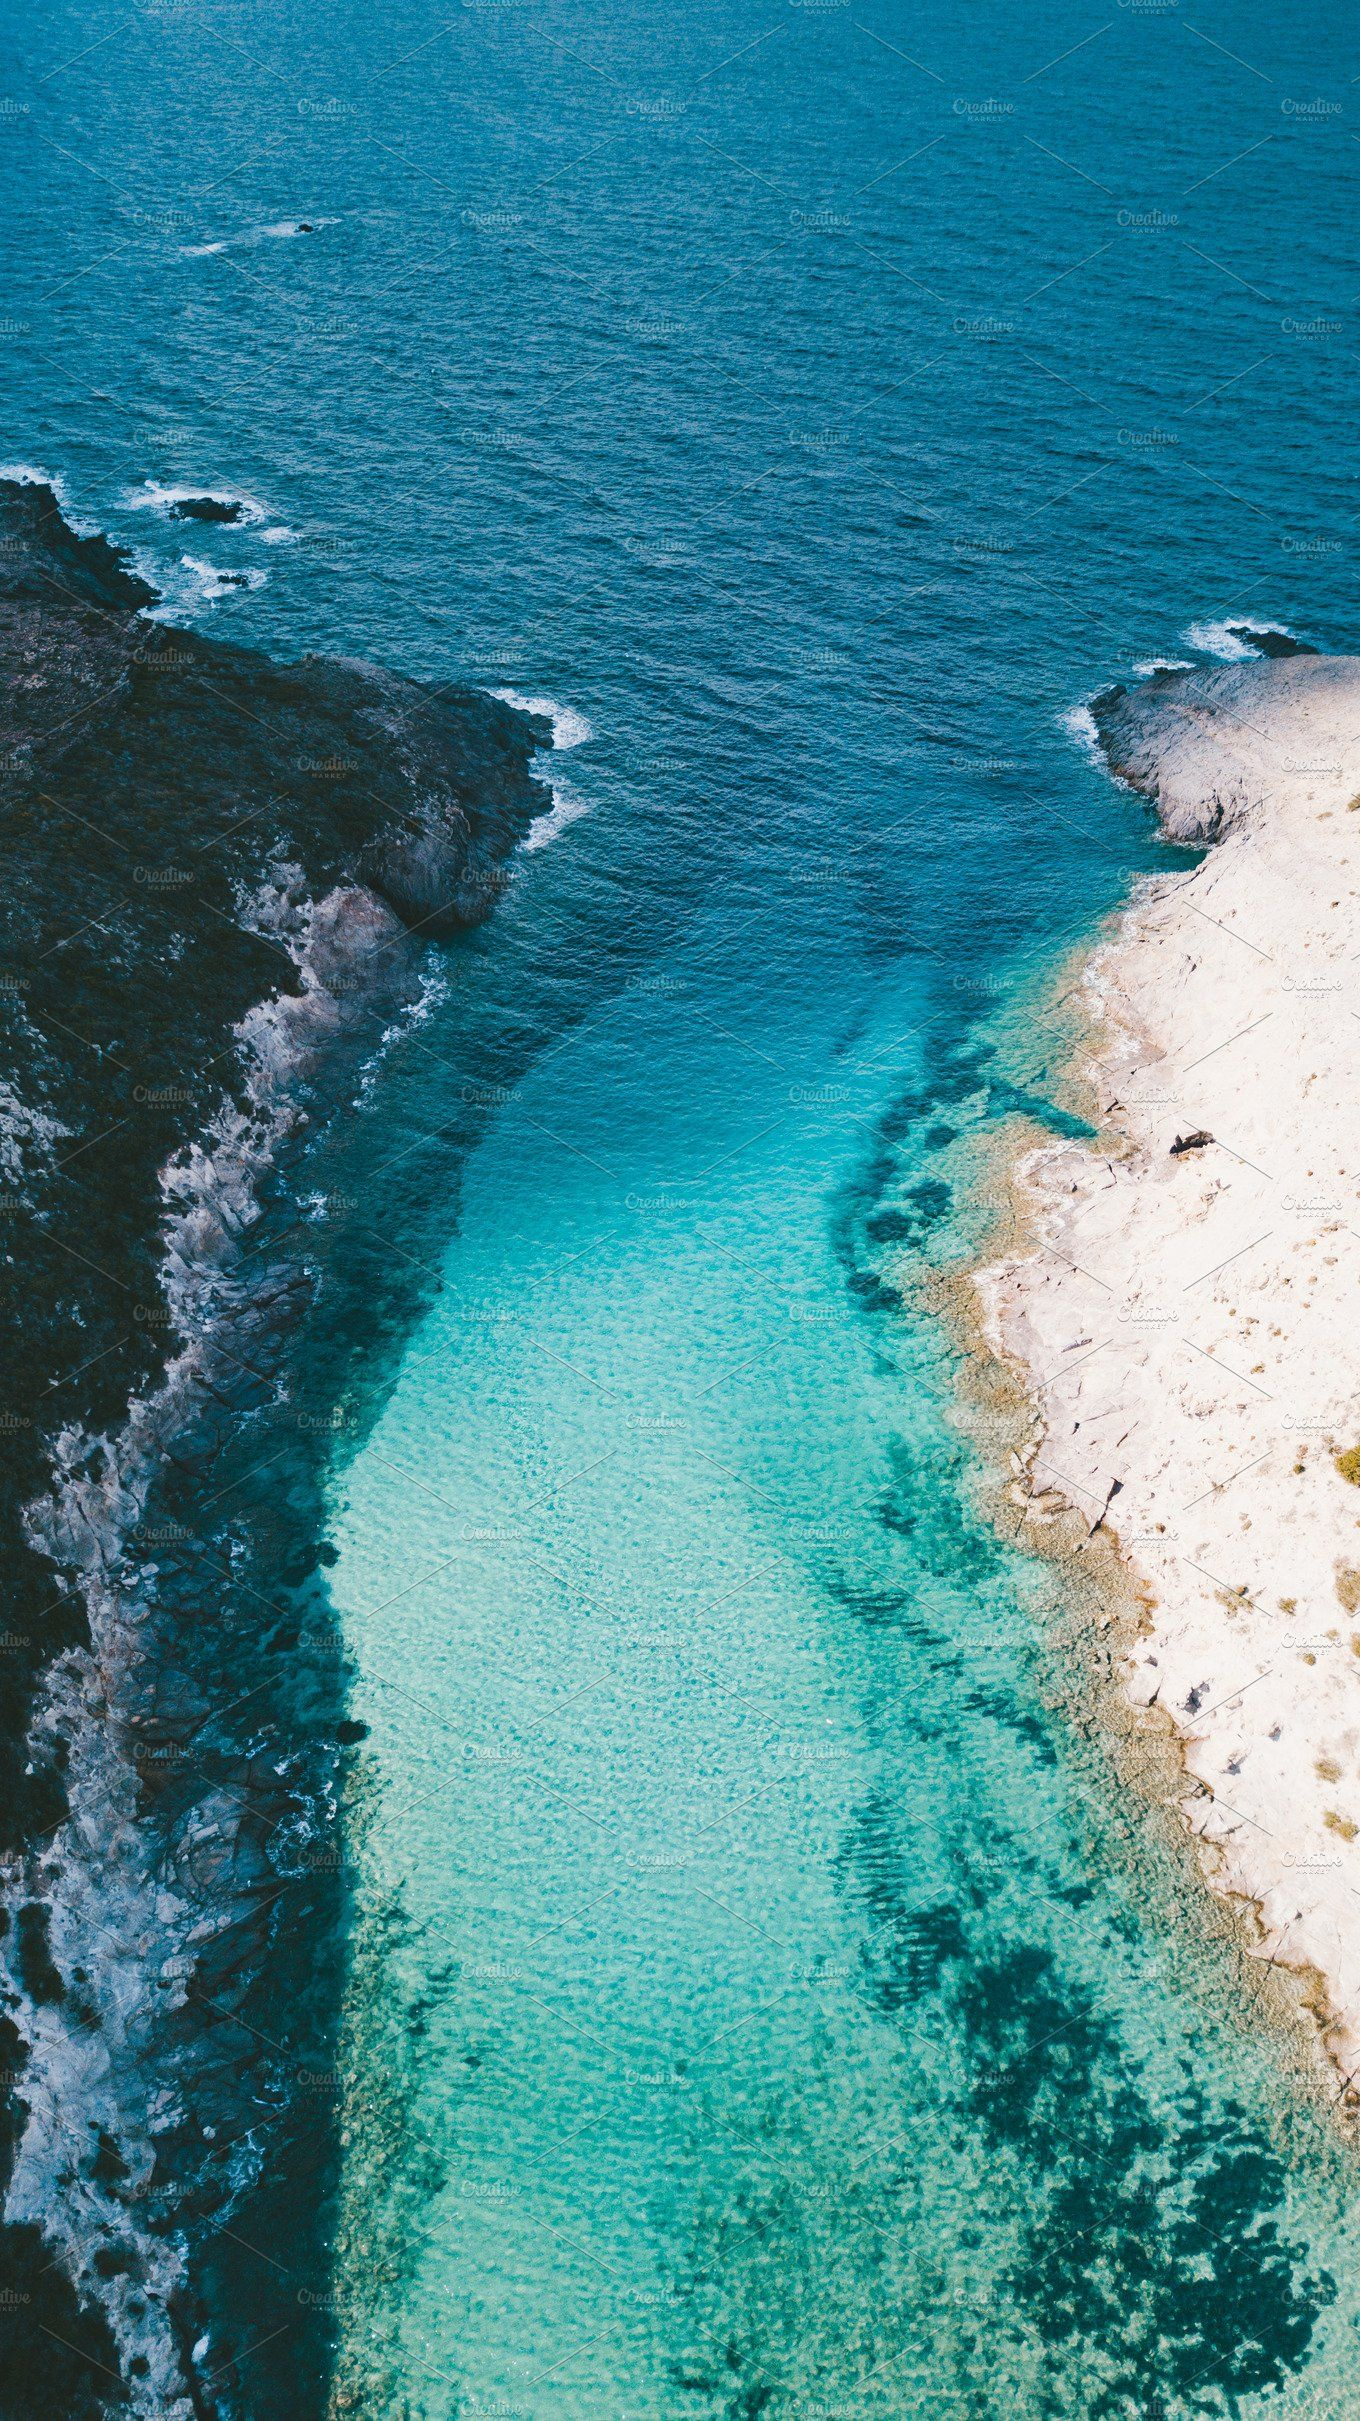 Aerial View Of The Amazing Sea Ocean Photography Ocean Wallpaper Aerial View